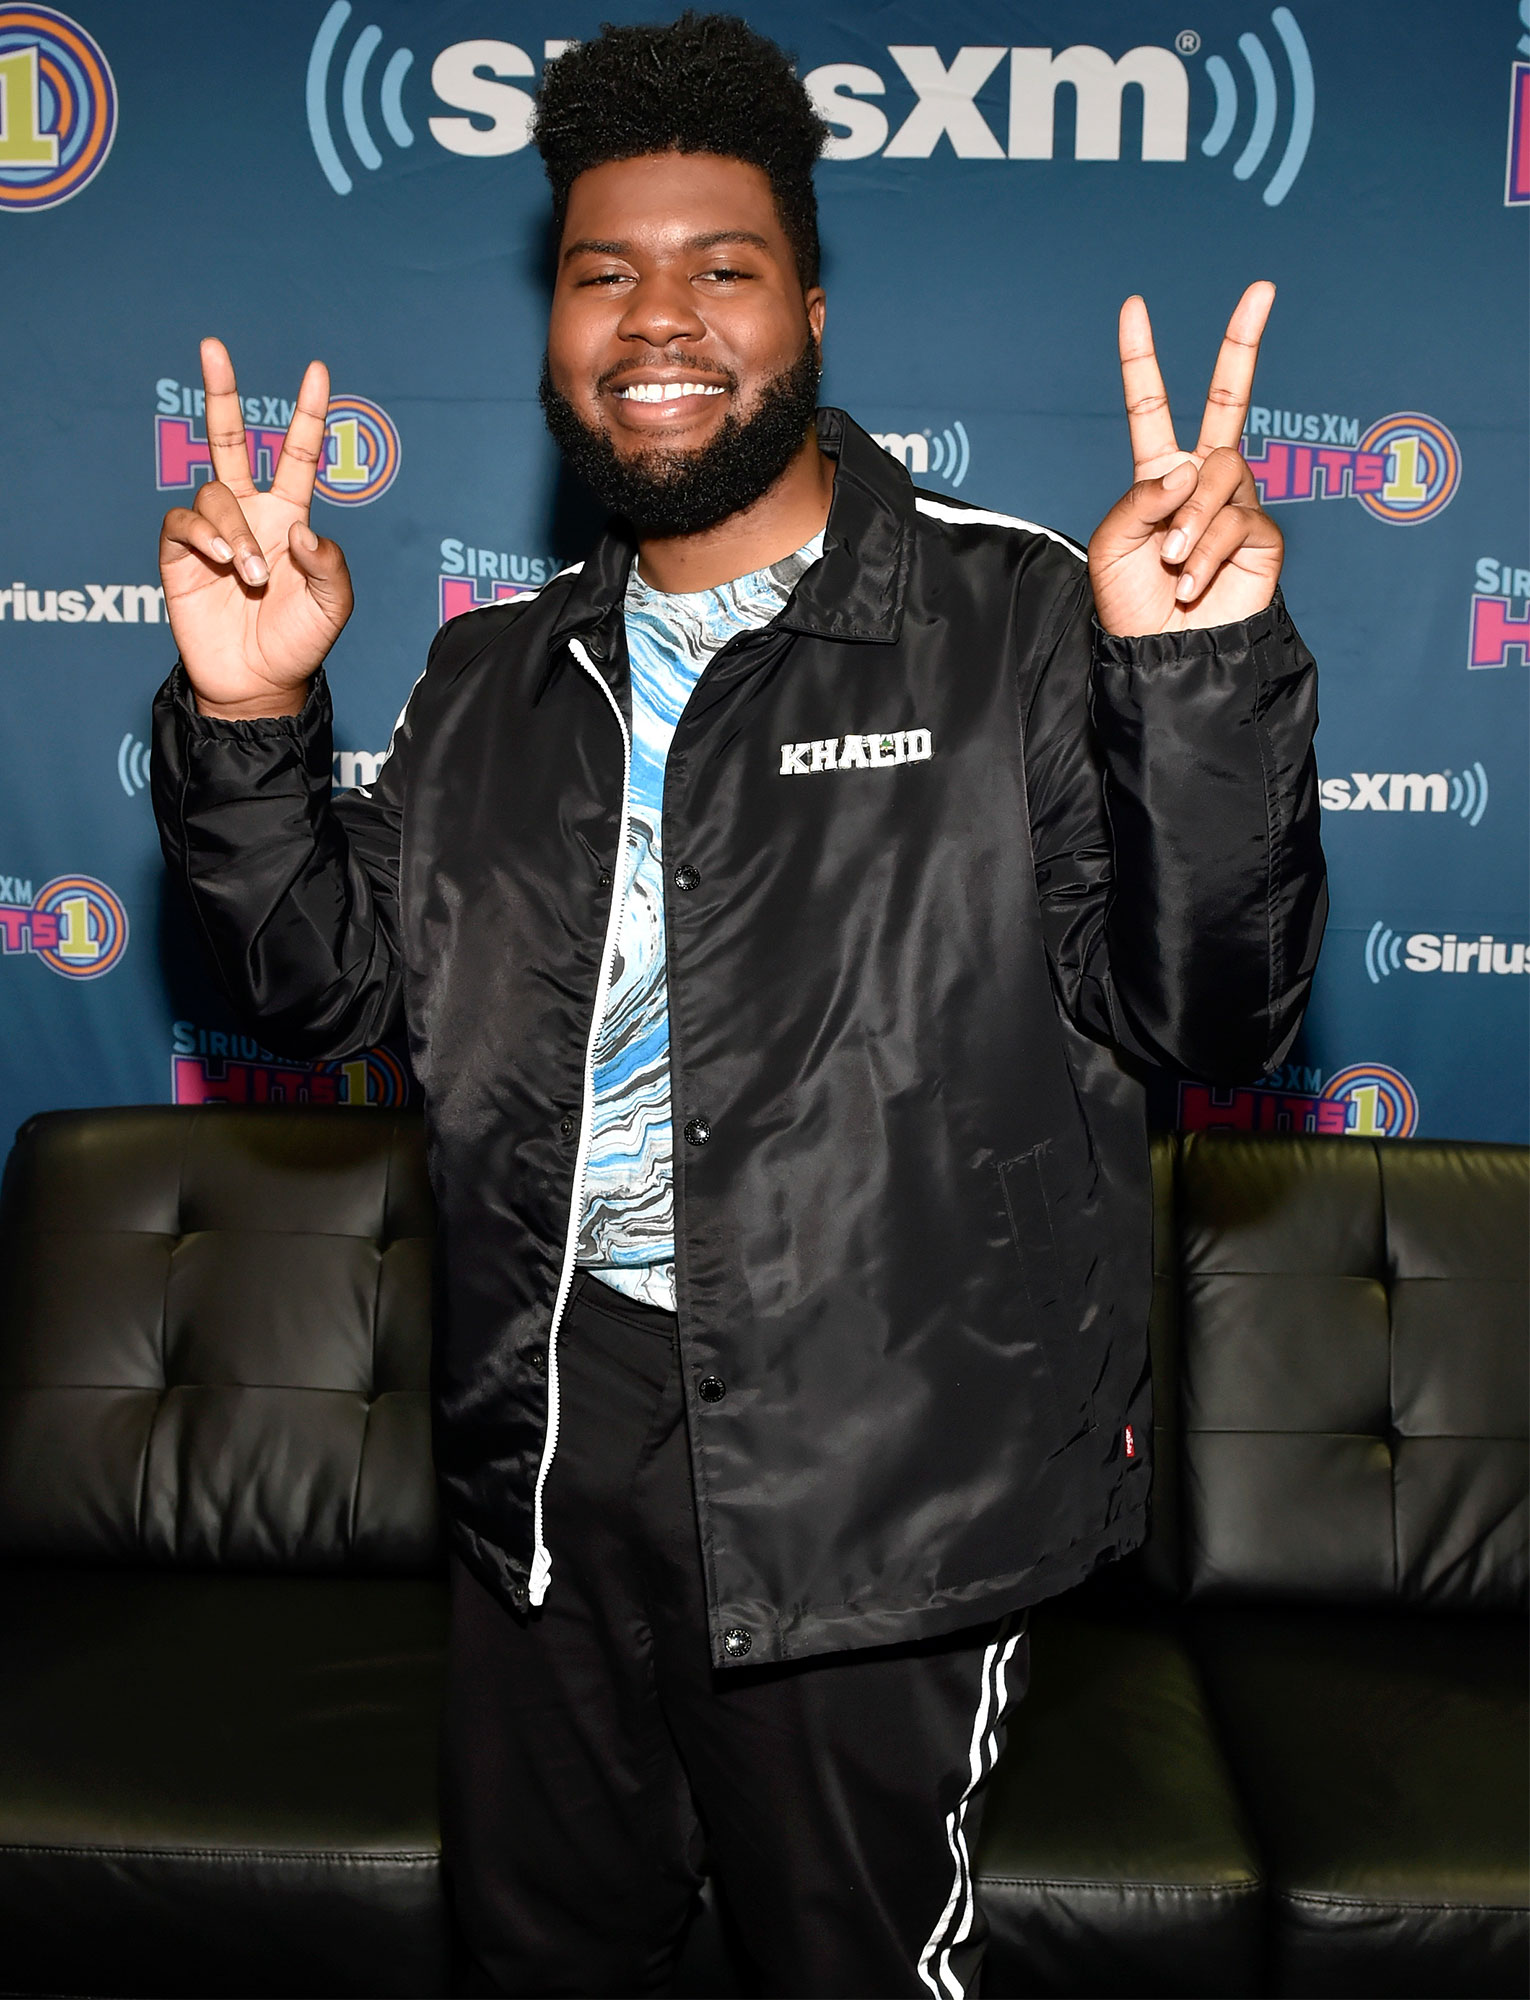 SiriusXM Hits 1 Broadcasts Backstage Leading Up To The Billboard Music Awards At The Grand Garden Arena In Las Vegas